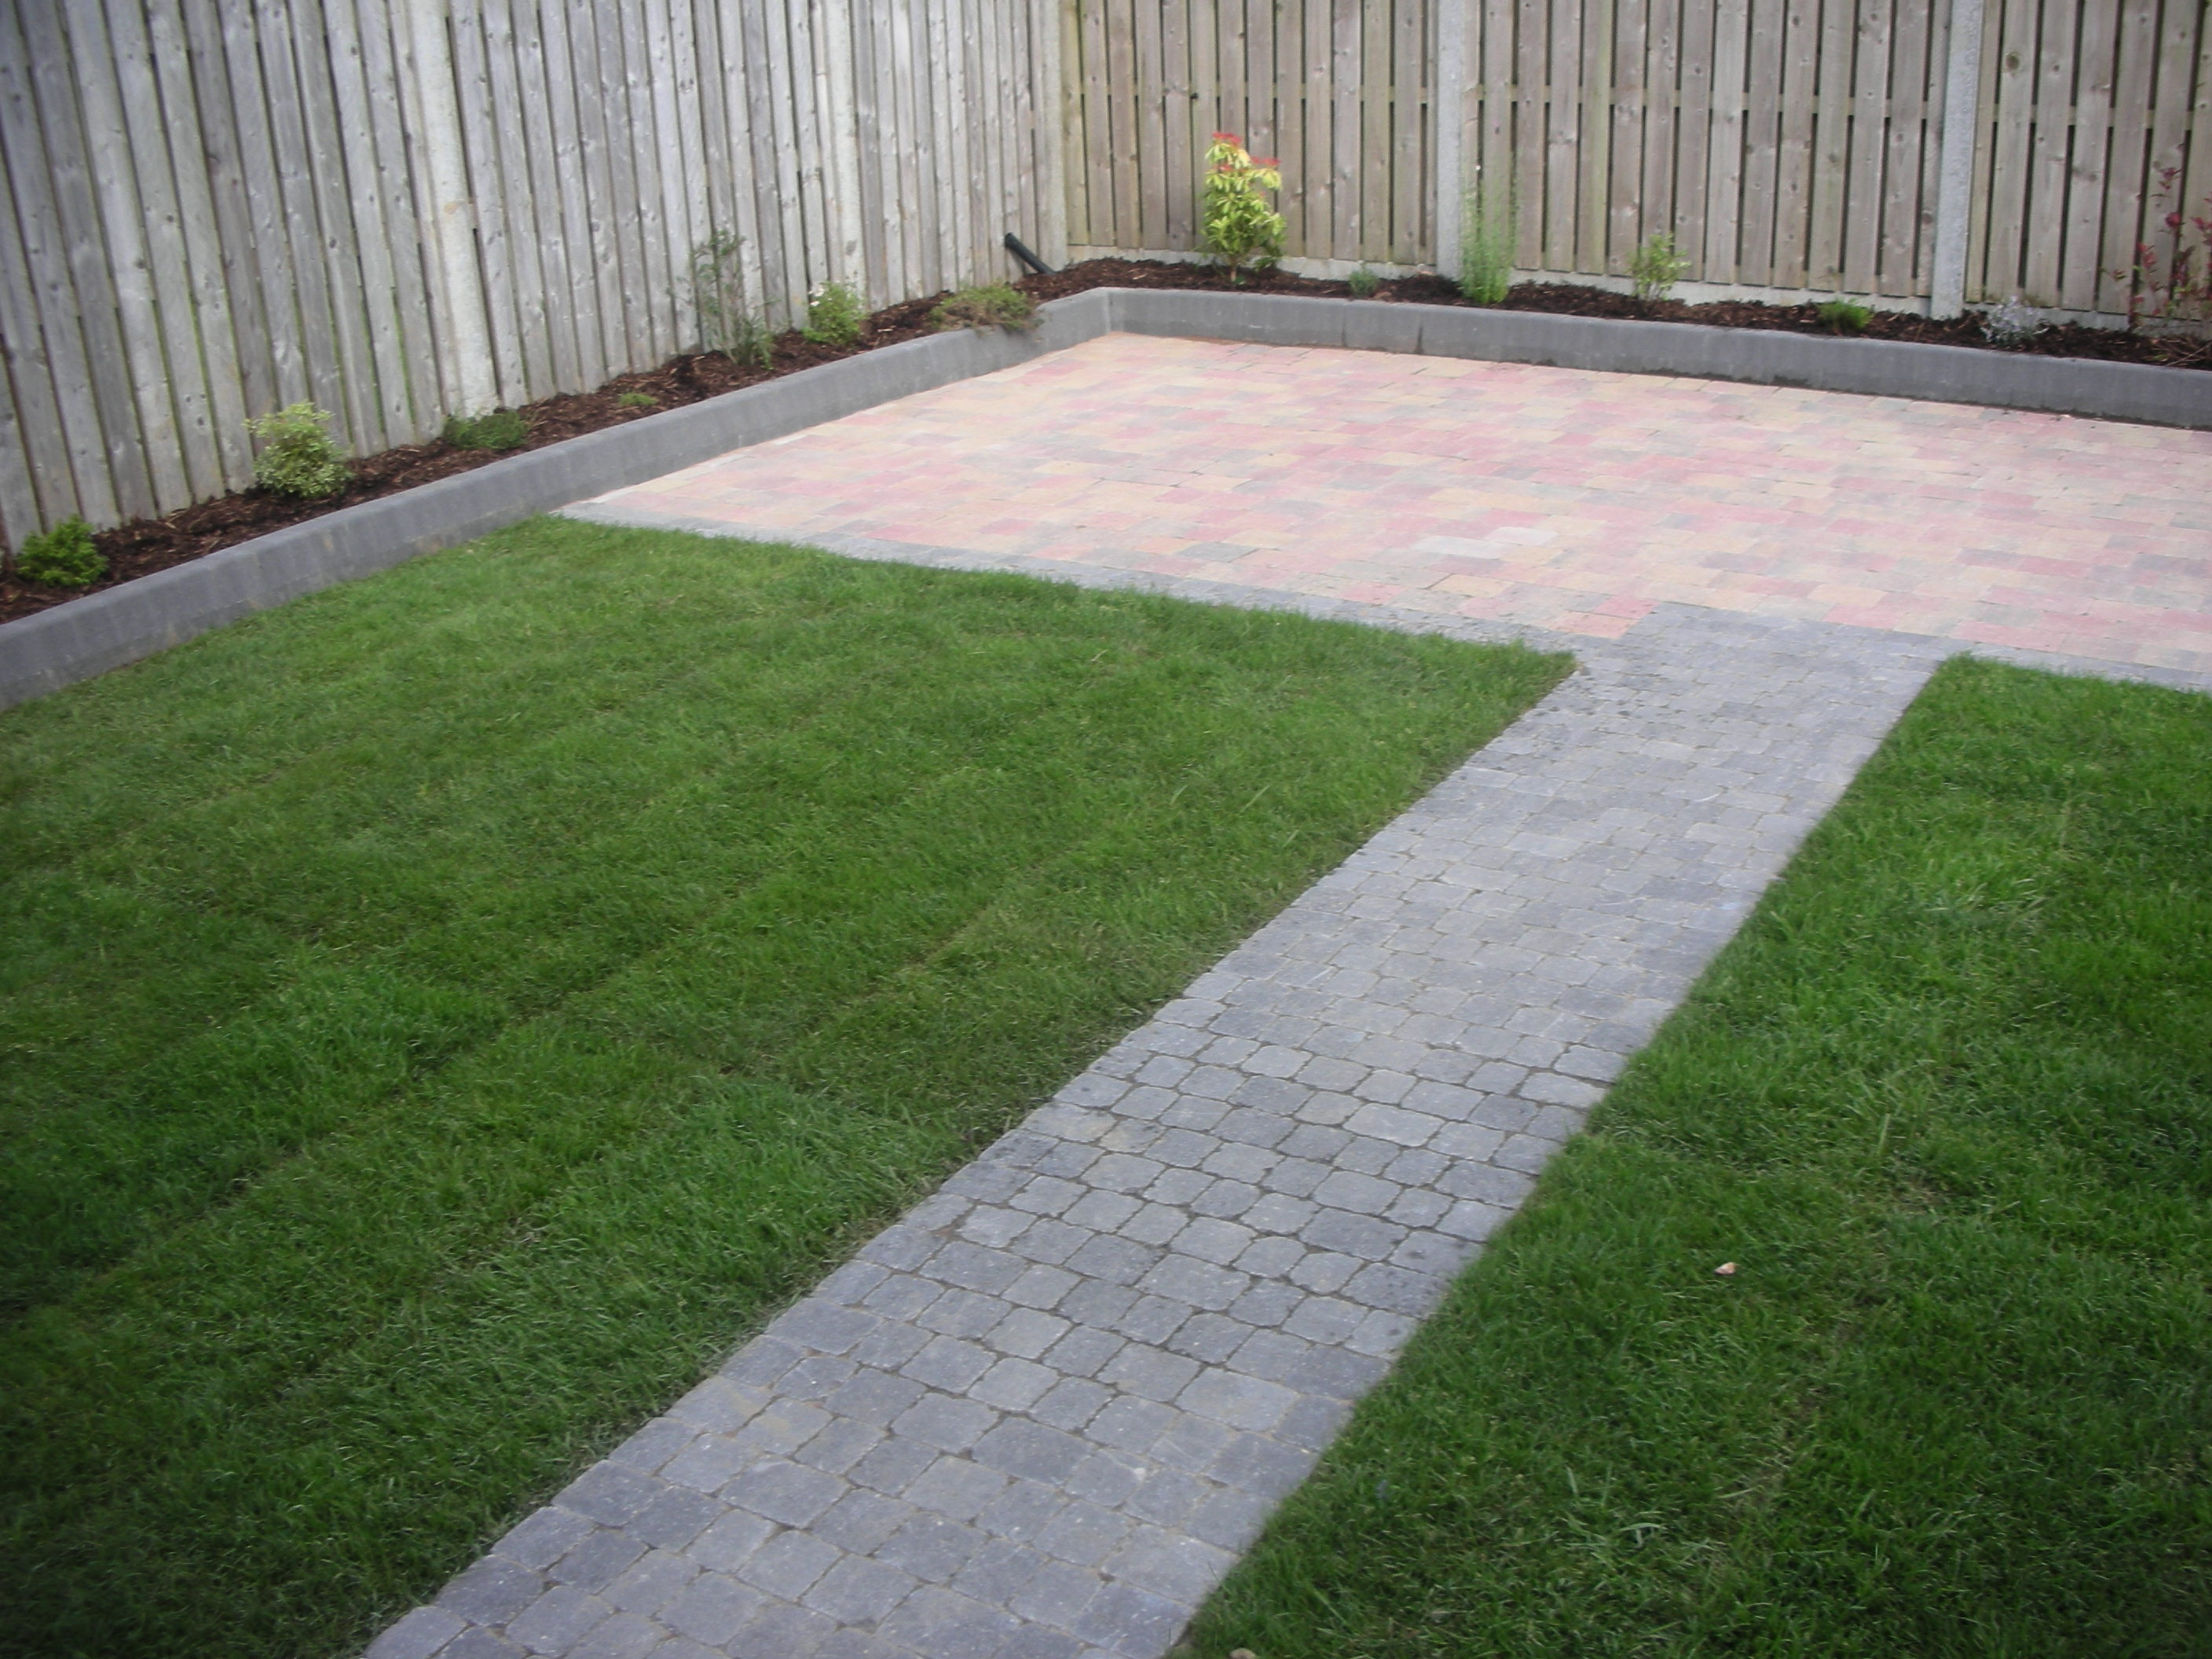 Paving with Path & Roll out lawn